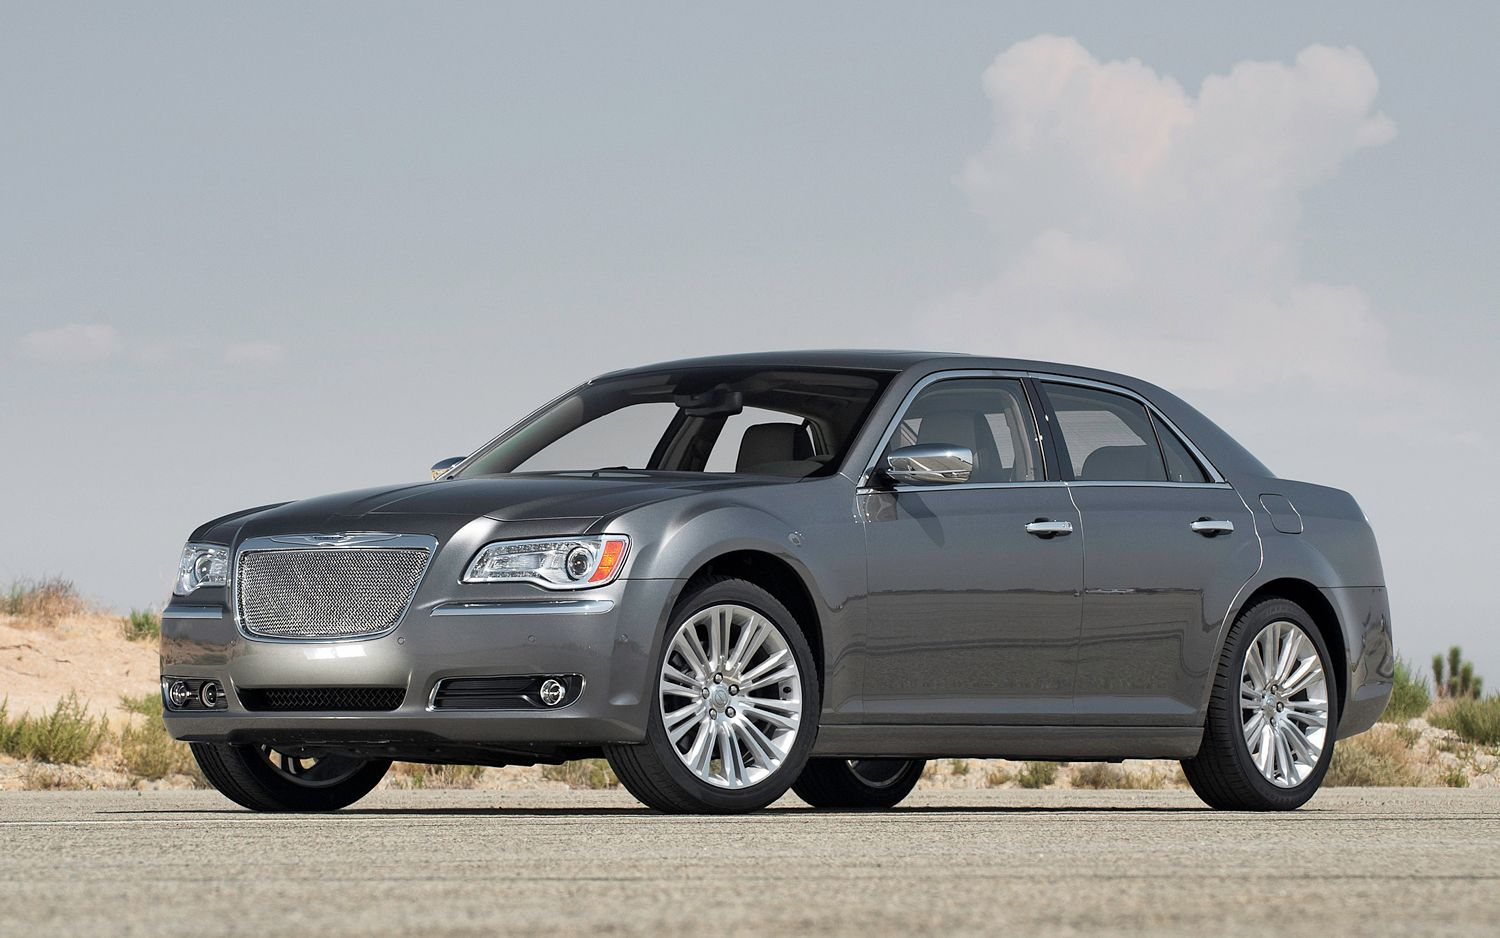 2012 Chrysler 300 Front View1